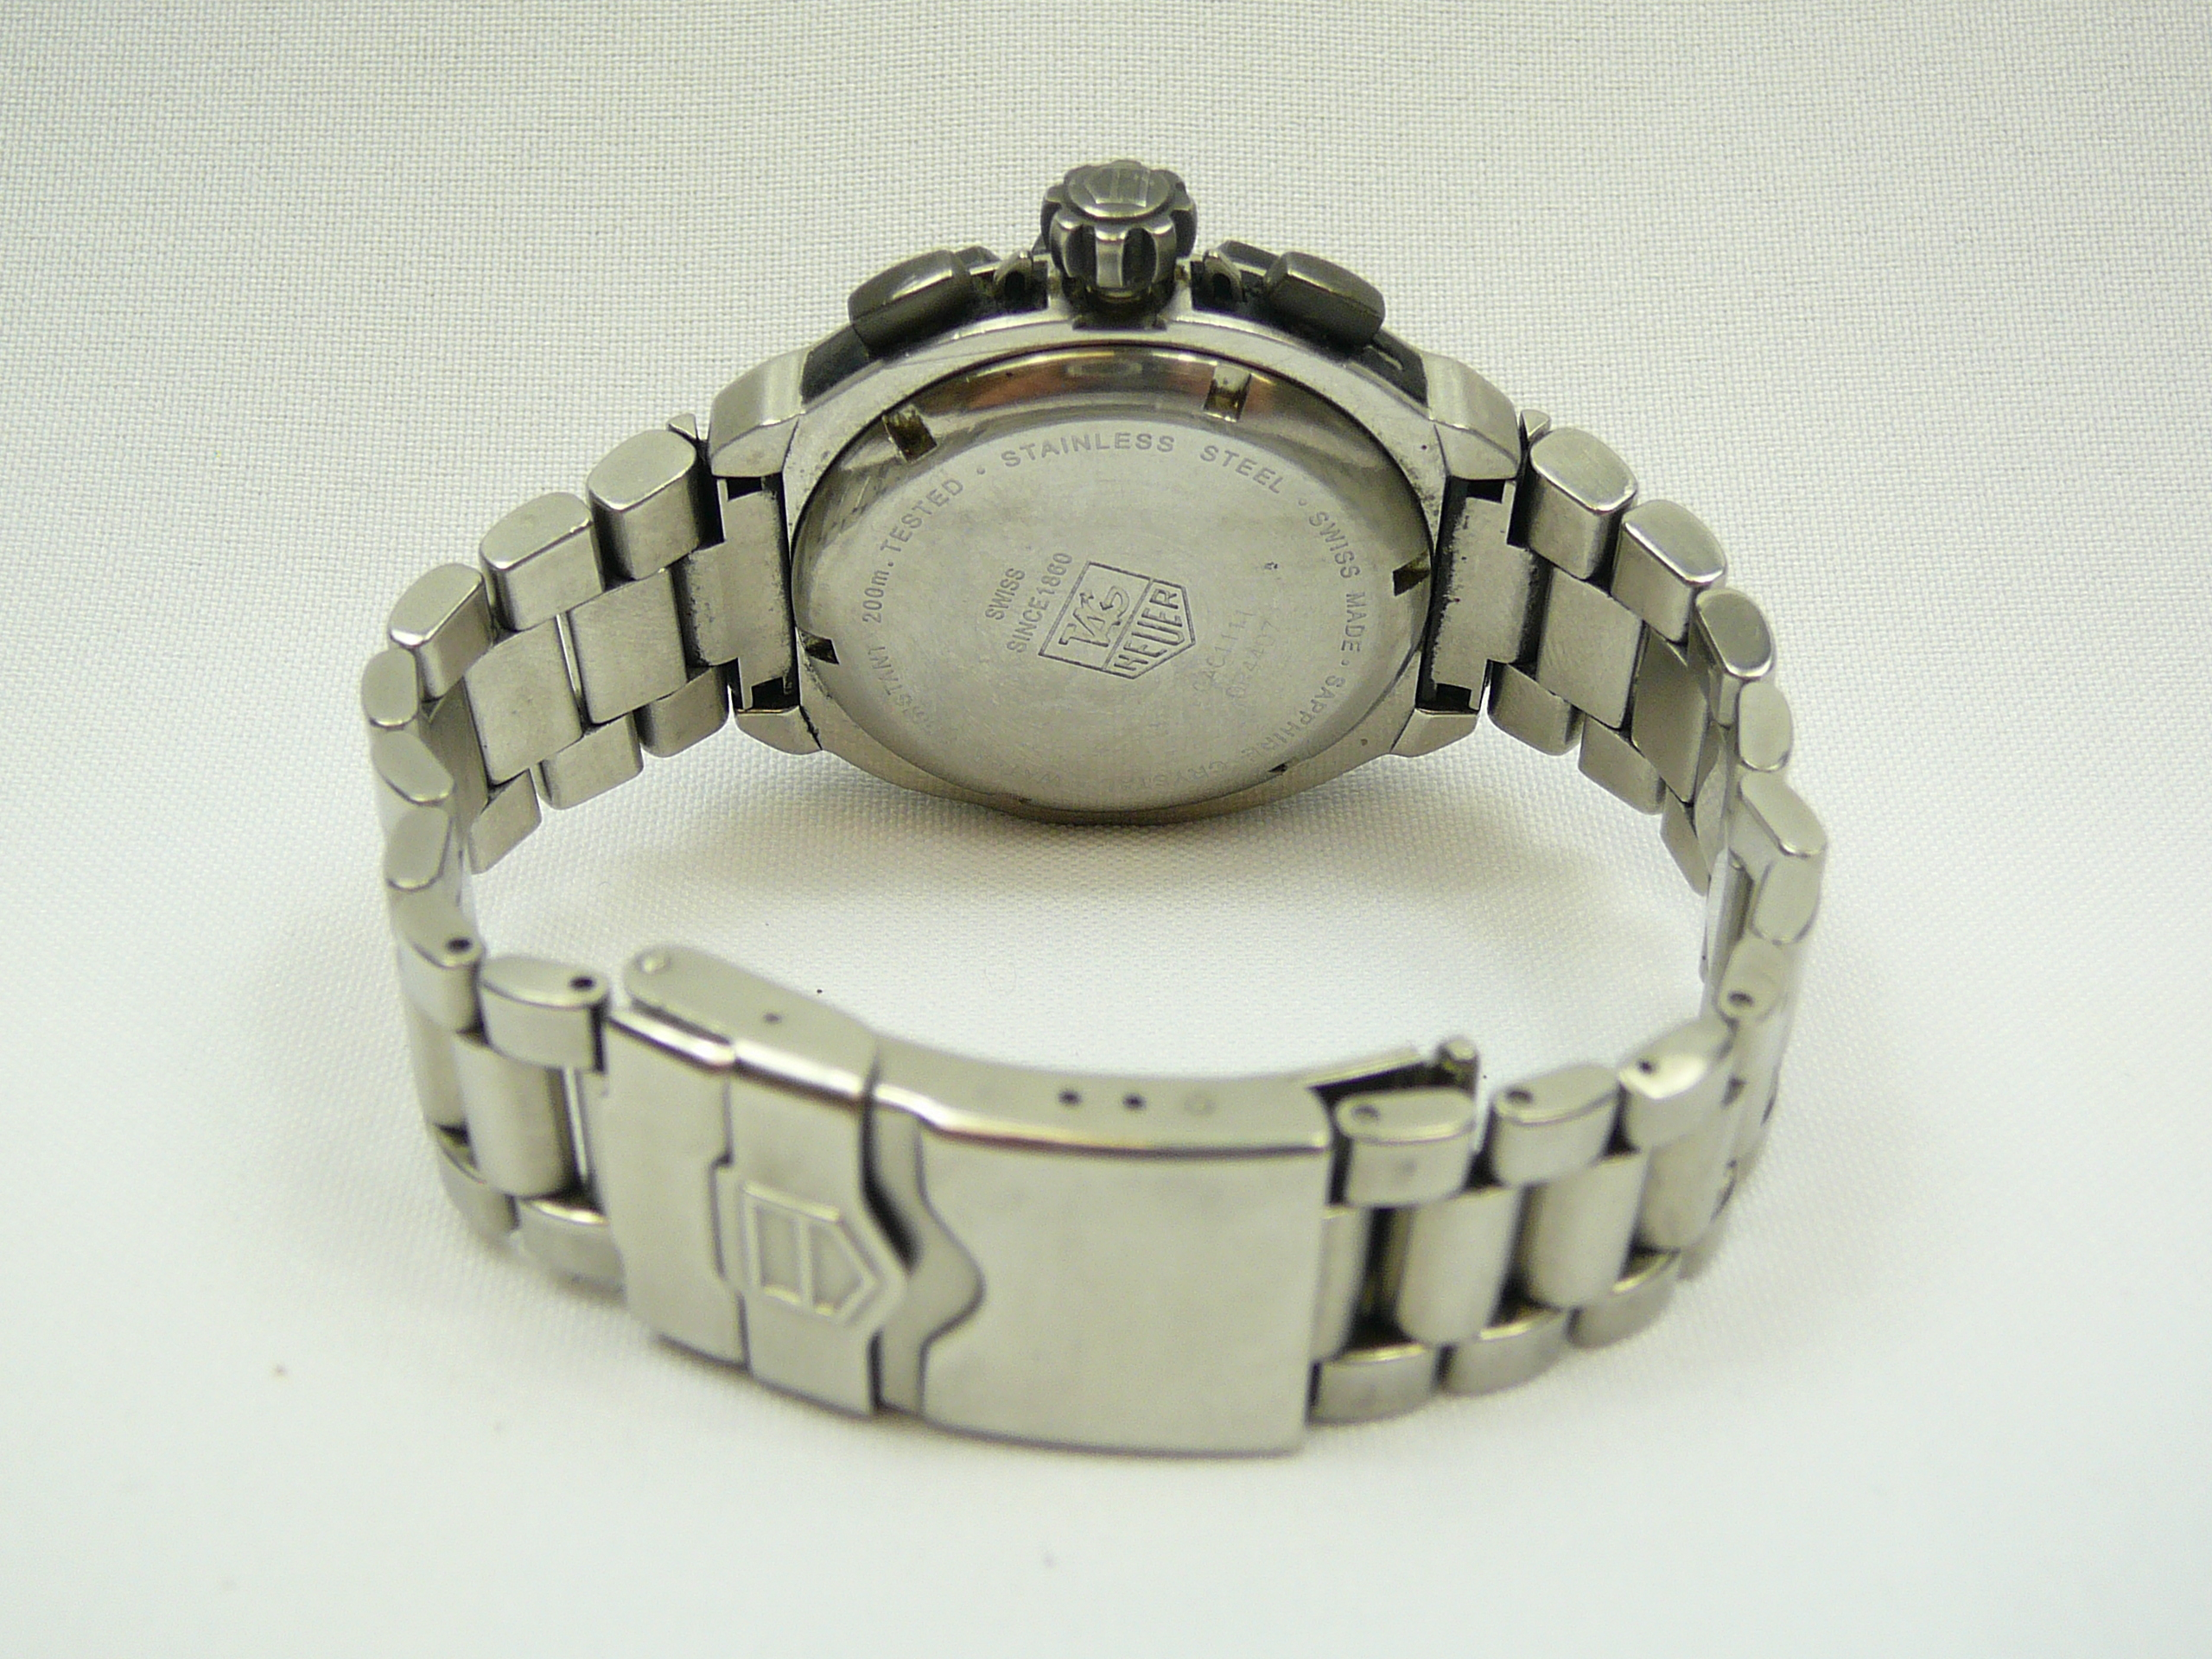 Gents Tag Heuer Wrist Watch - Image 3 of 4